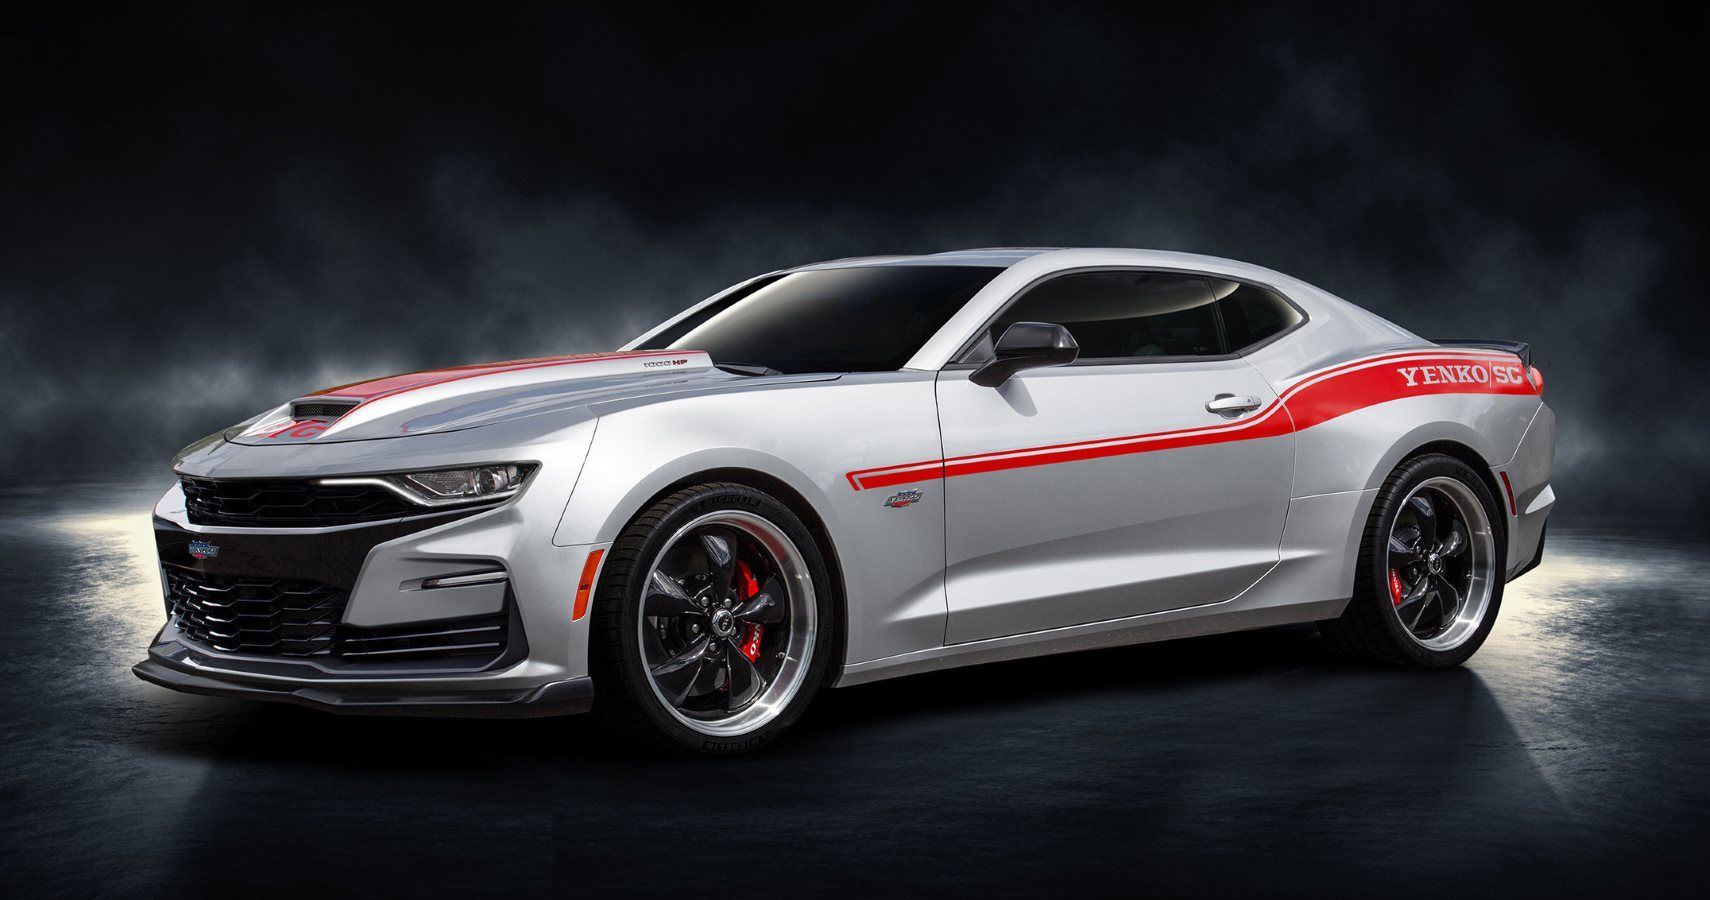 Chevrolet Dealers In Sc >> 2019 Yenko Camaro Comes With Insane Power Right From The Dealership